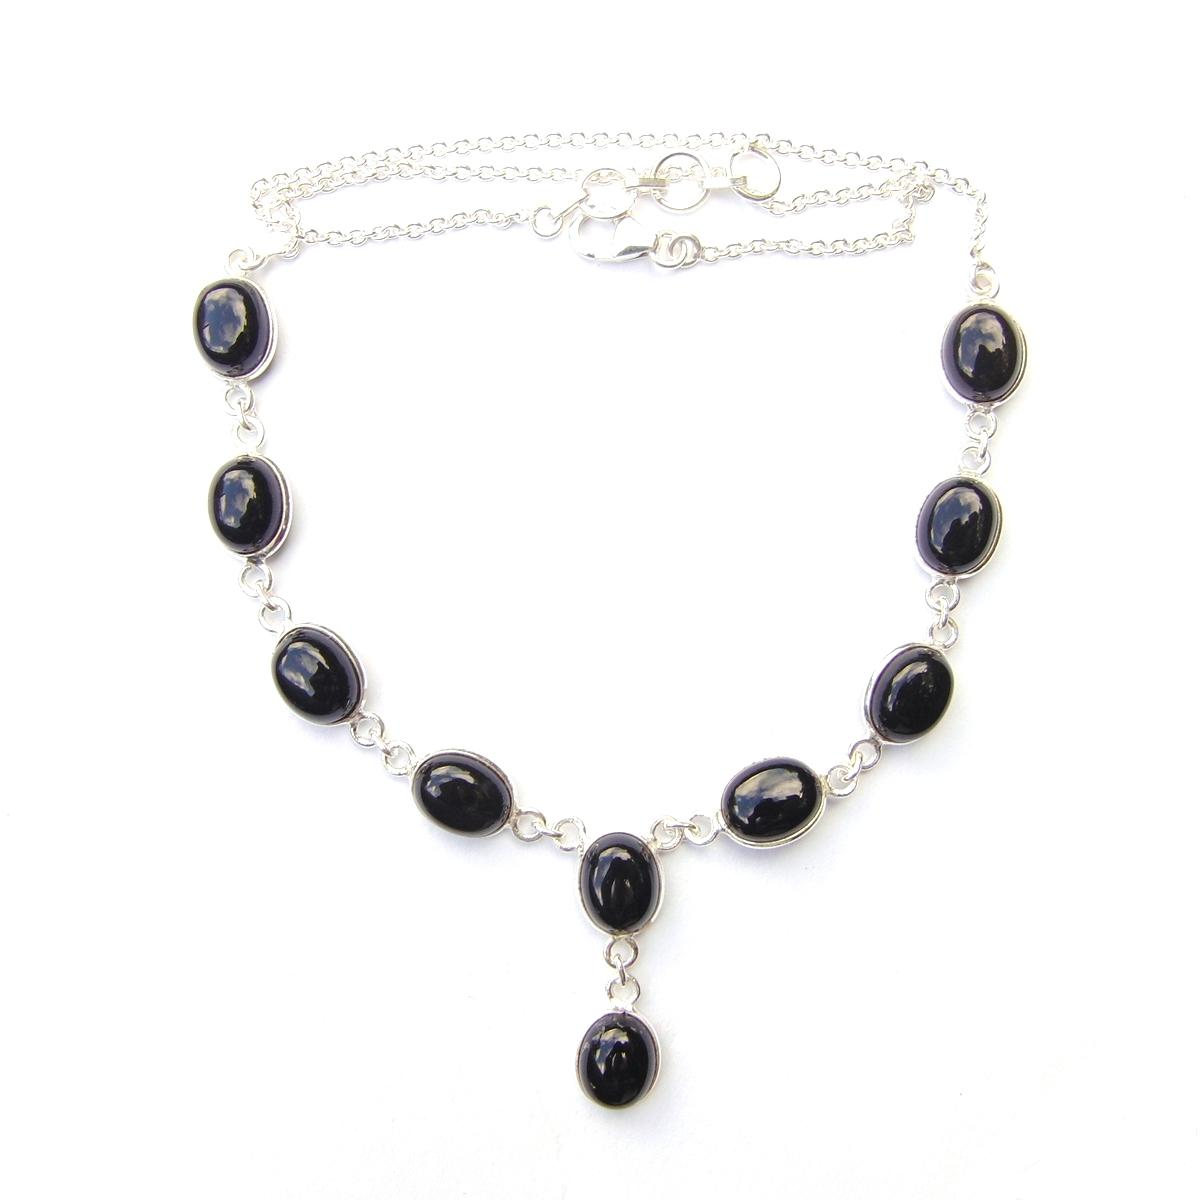 Black Onyx Oval Necklace